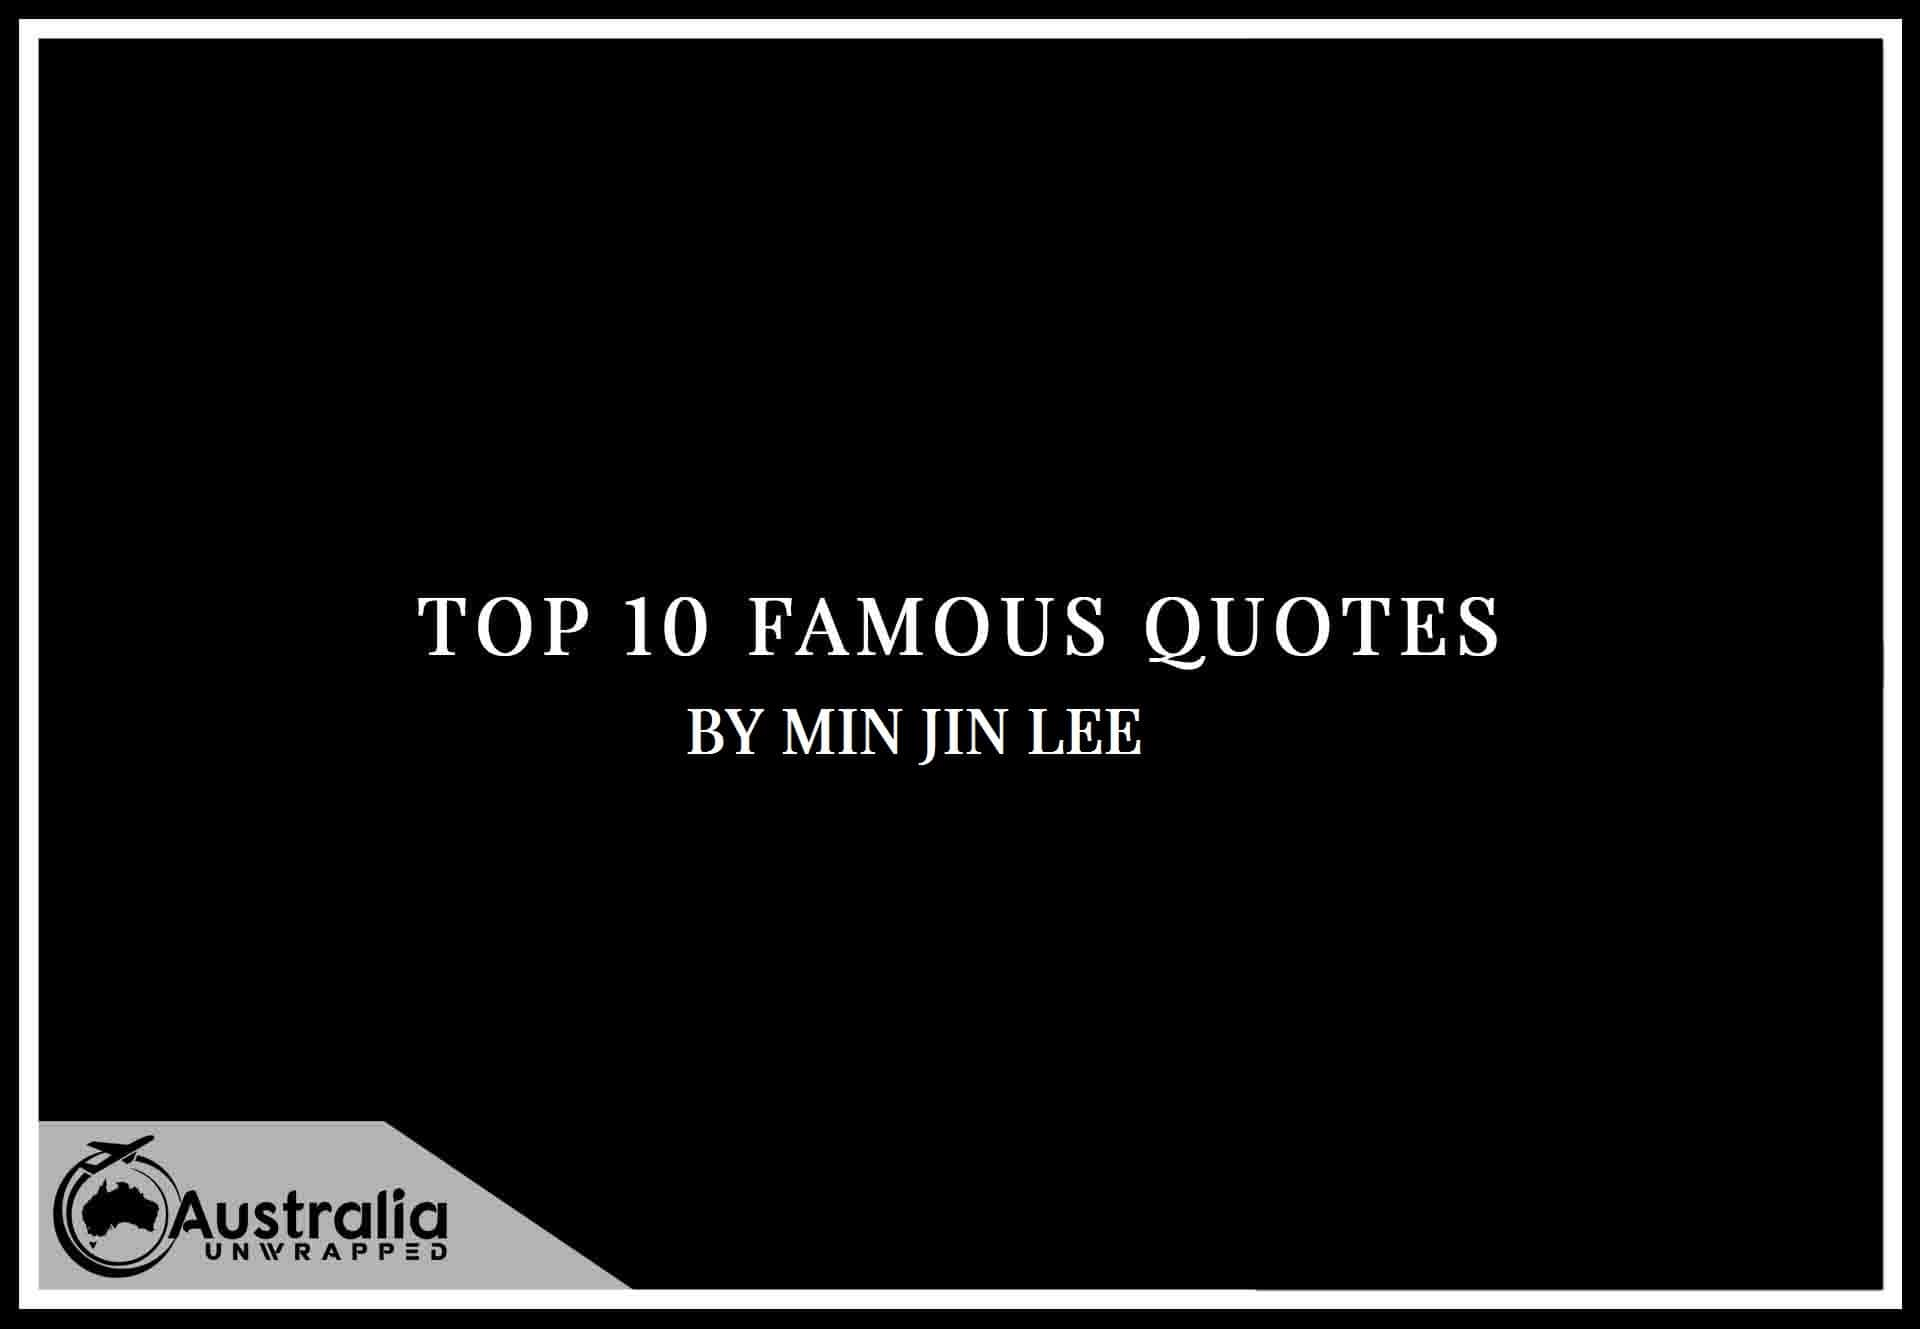 Min Jin Lee's Top 10 Popular and Famous Quotes